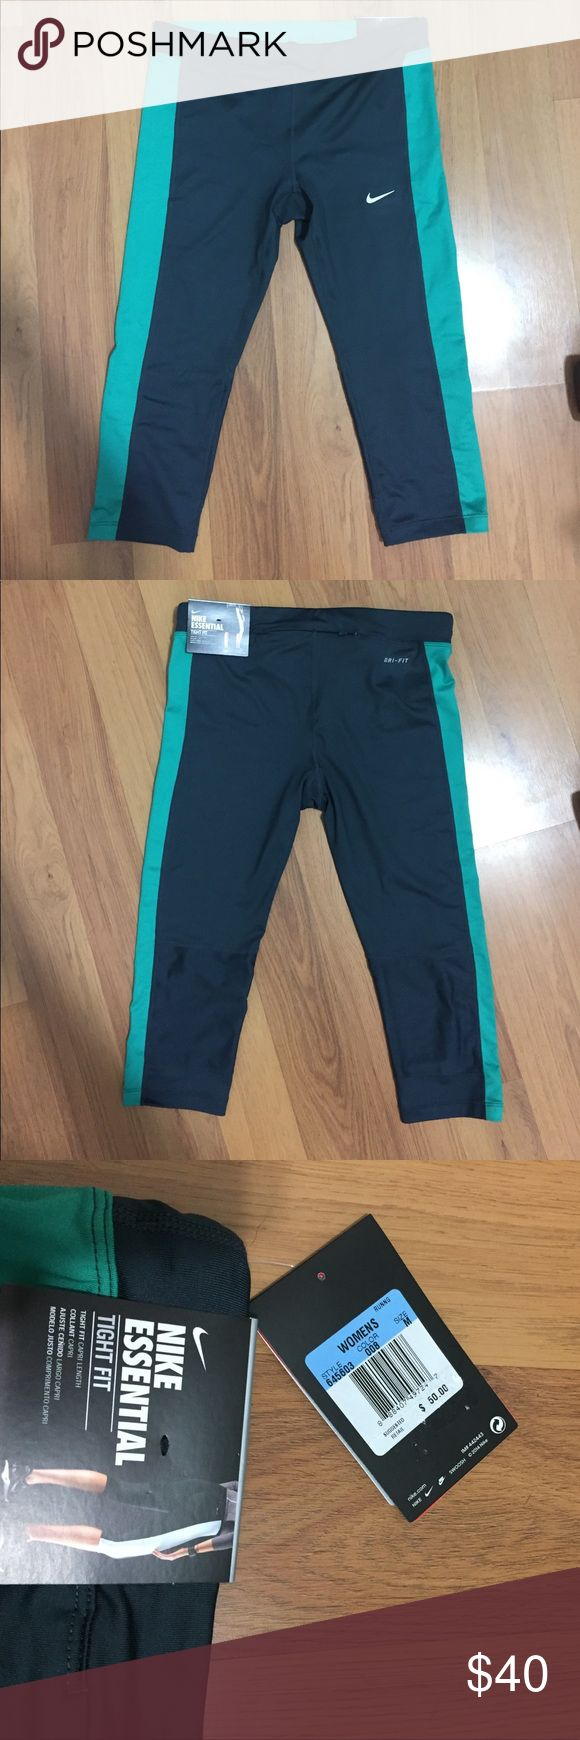 Nike capri size medium Brand new! Received as a gift but doesn't fit. Dark gray with green stripes on sides. Capri length. Dri fit Nike Pants Capris